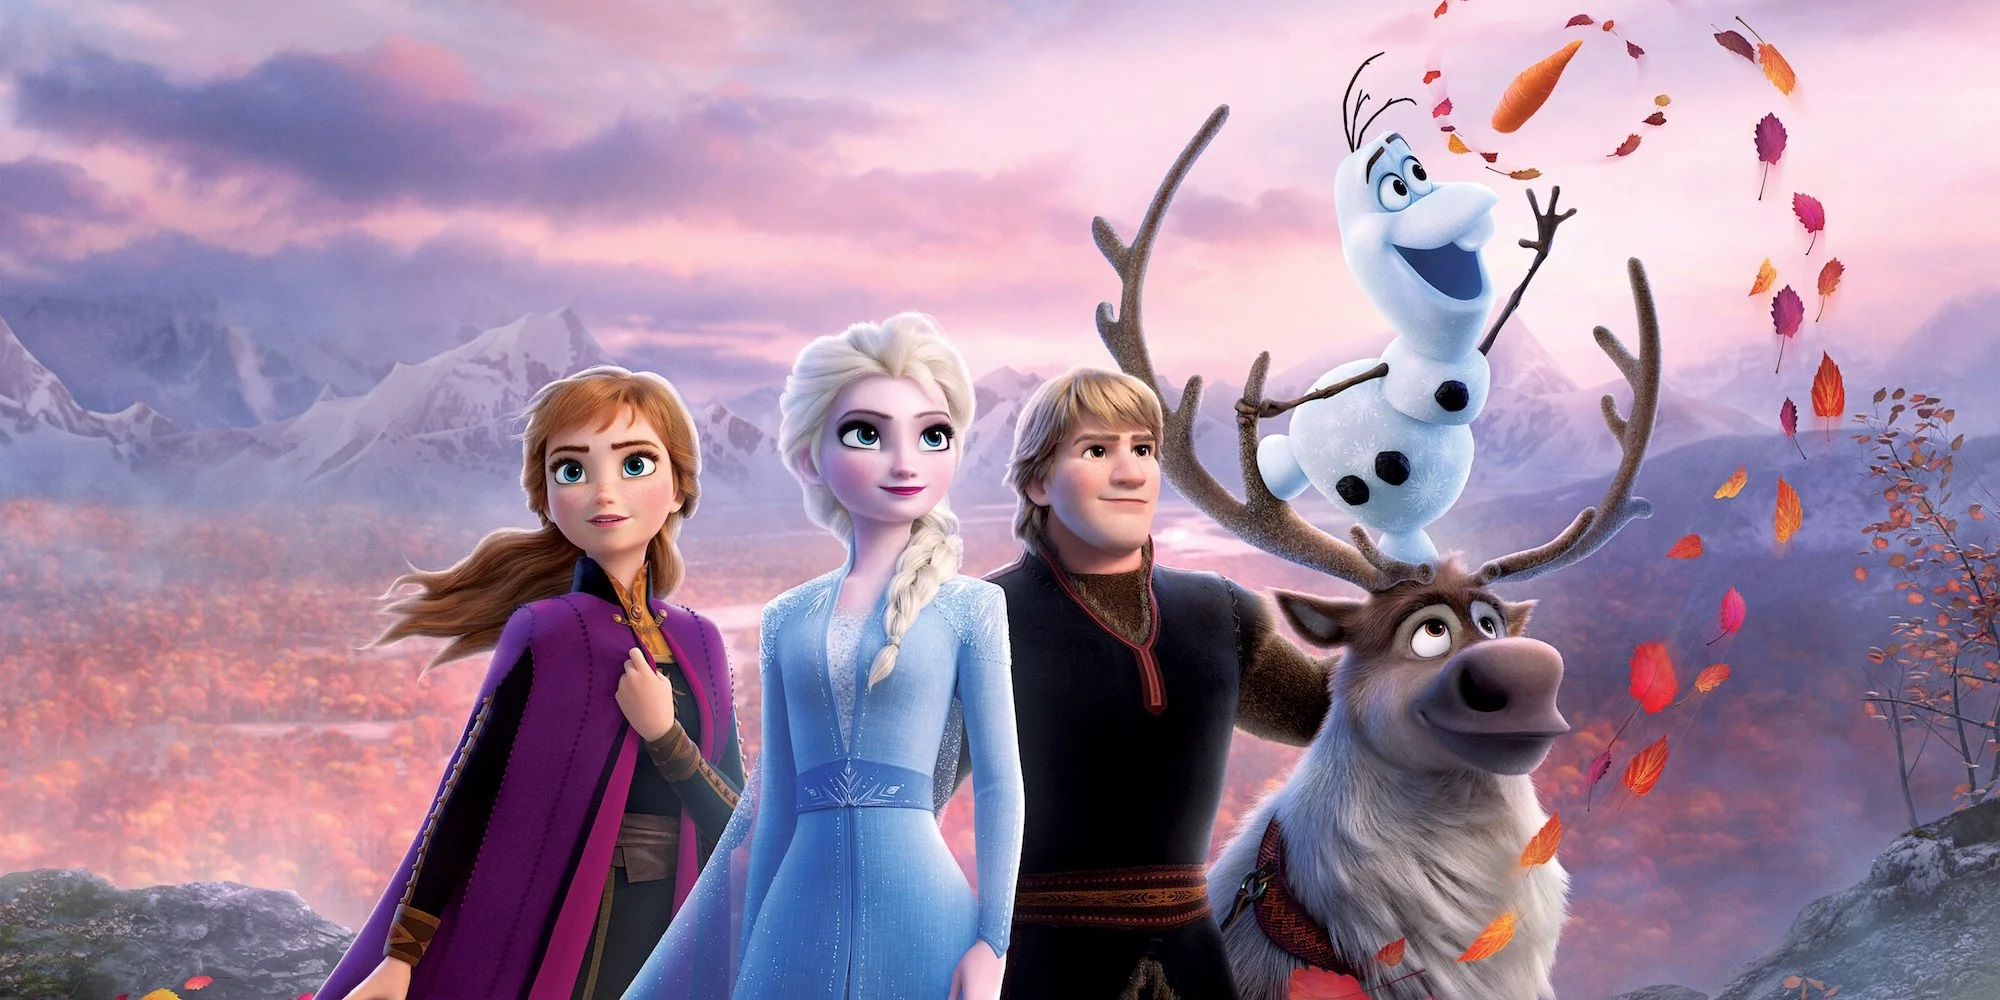 Frozen 2, don't take the boys! – Wyoming Parent